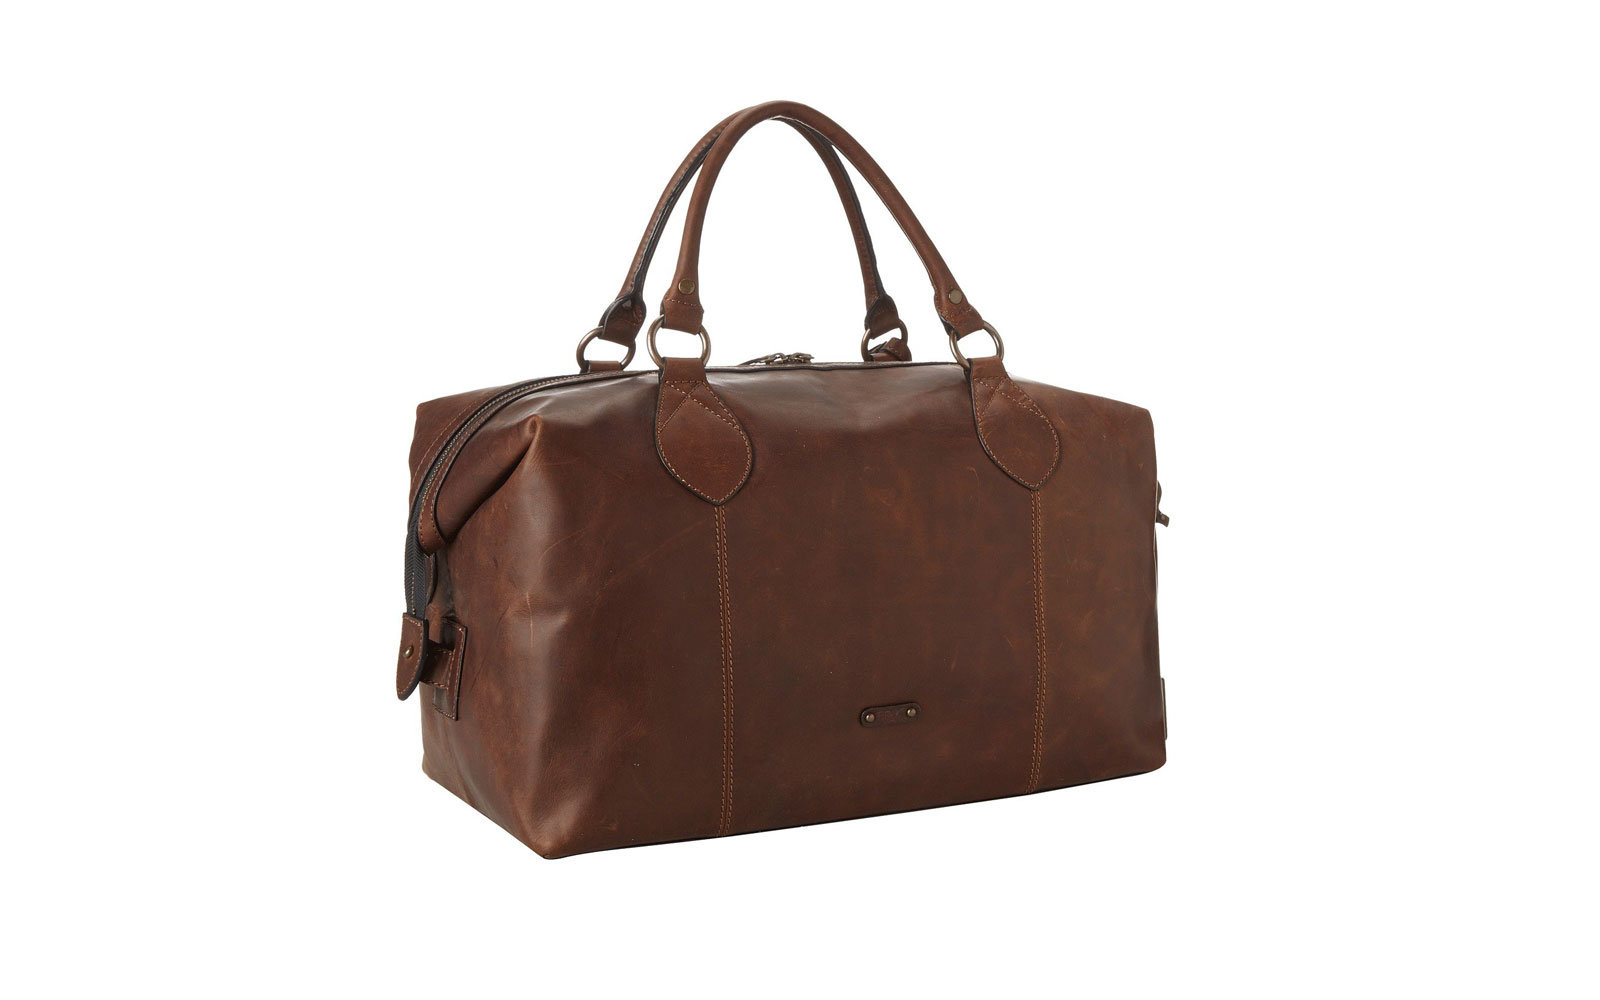 0d40d47d291d Frye Logan Leather Overnight Bag. Frye Duffel ...